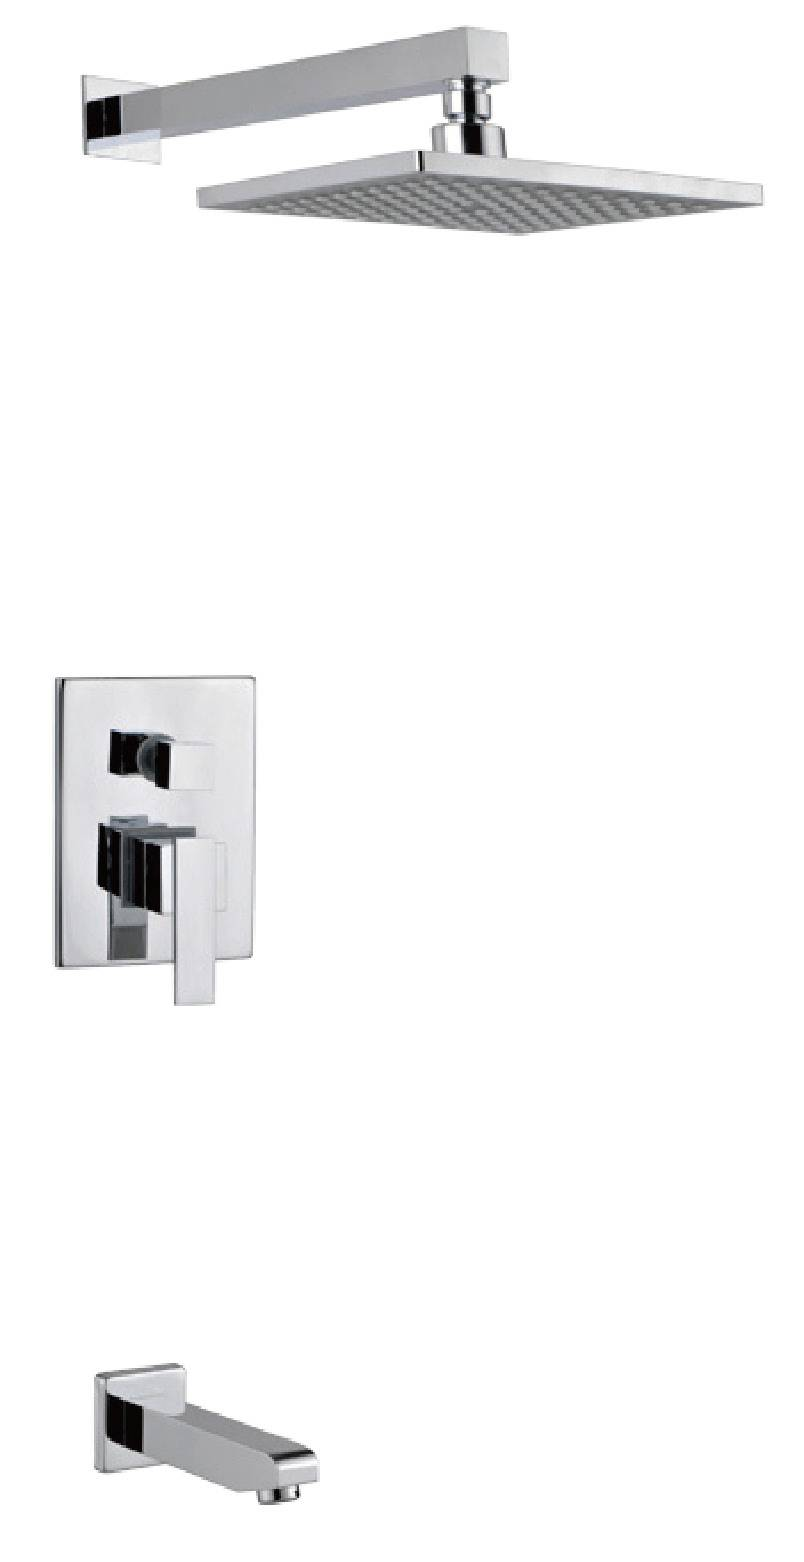 Contemporary chrome brass wall mounted bathroom concealed shower mixer